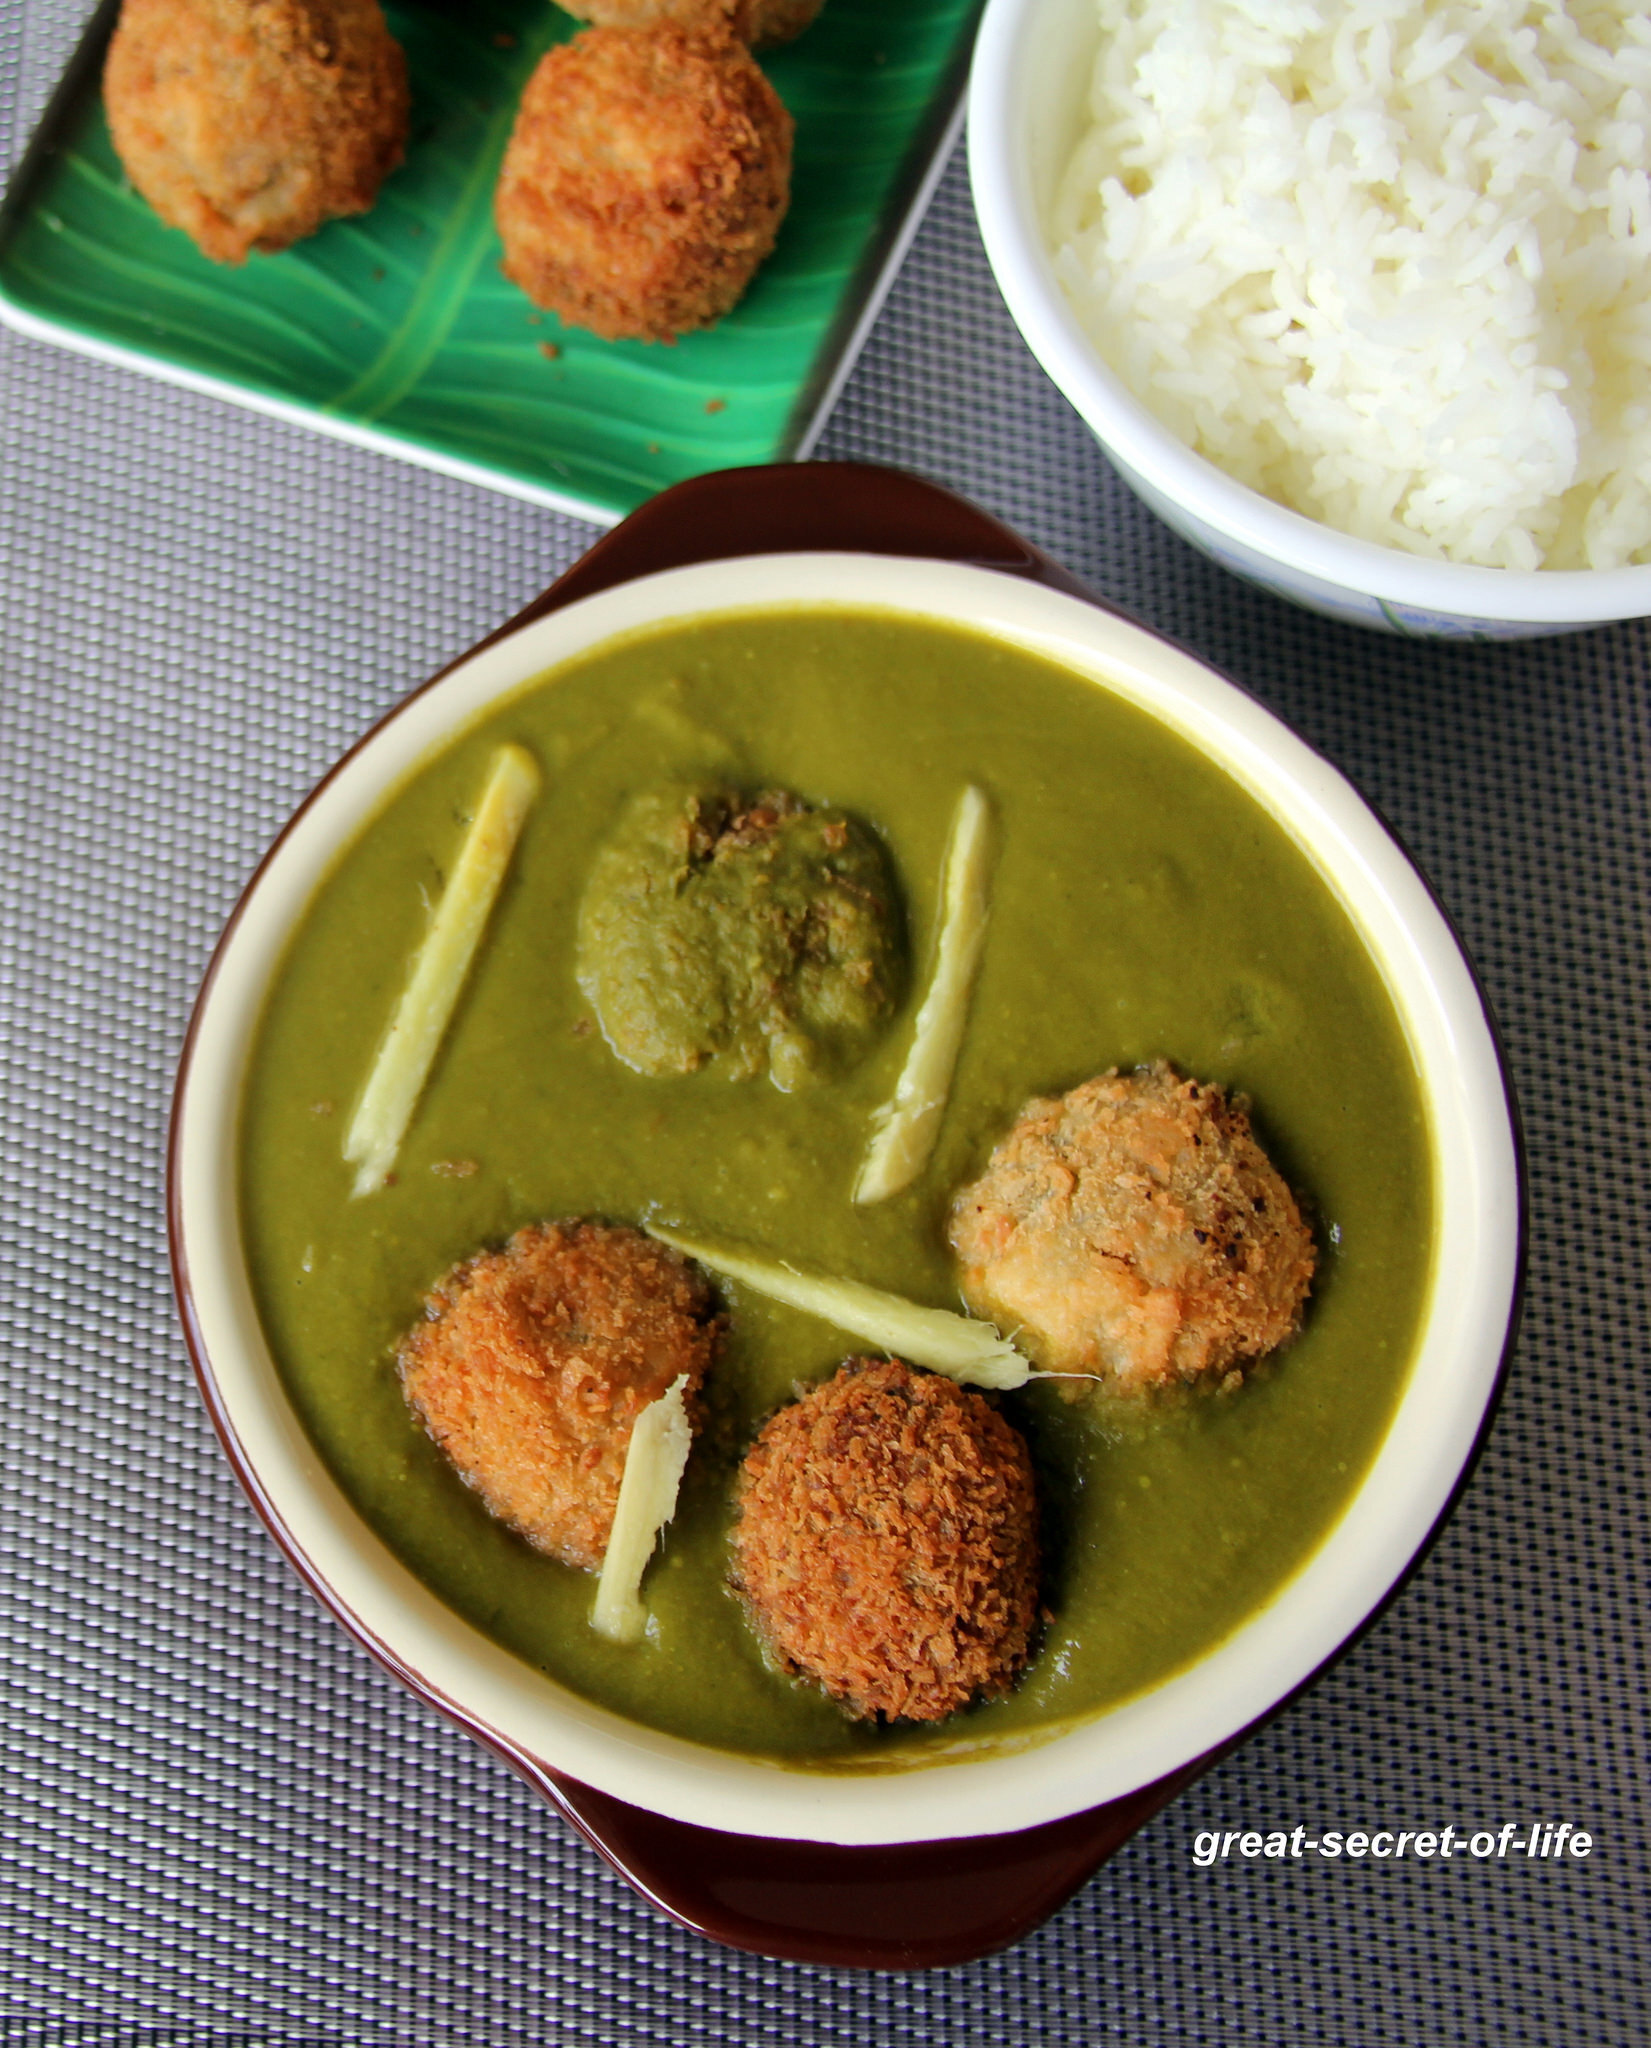 vegetable kofta in Palak gravy - Side dish for Fried rice or Roti